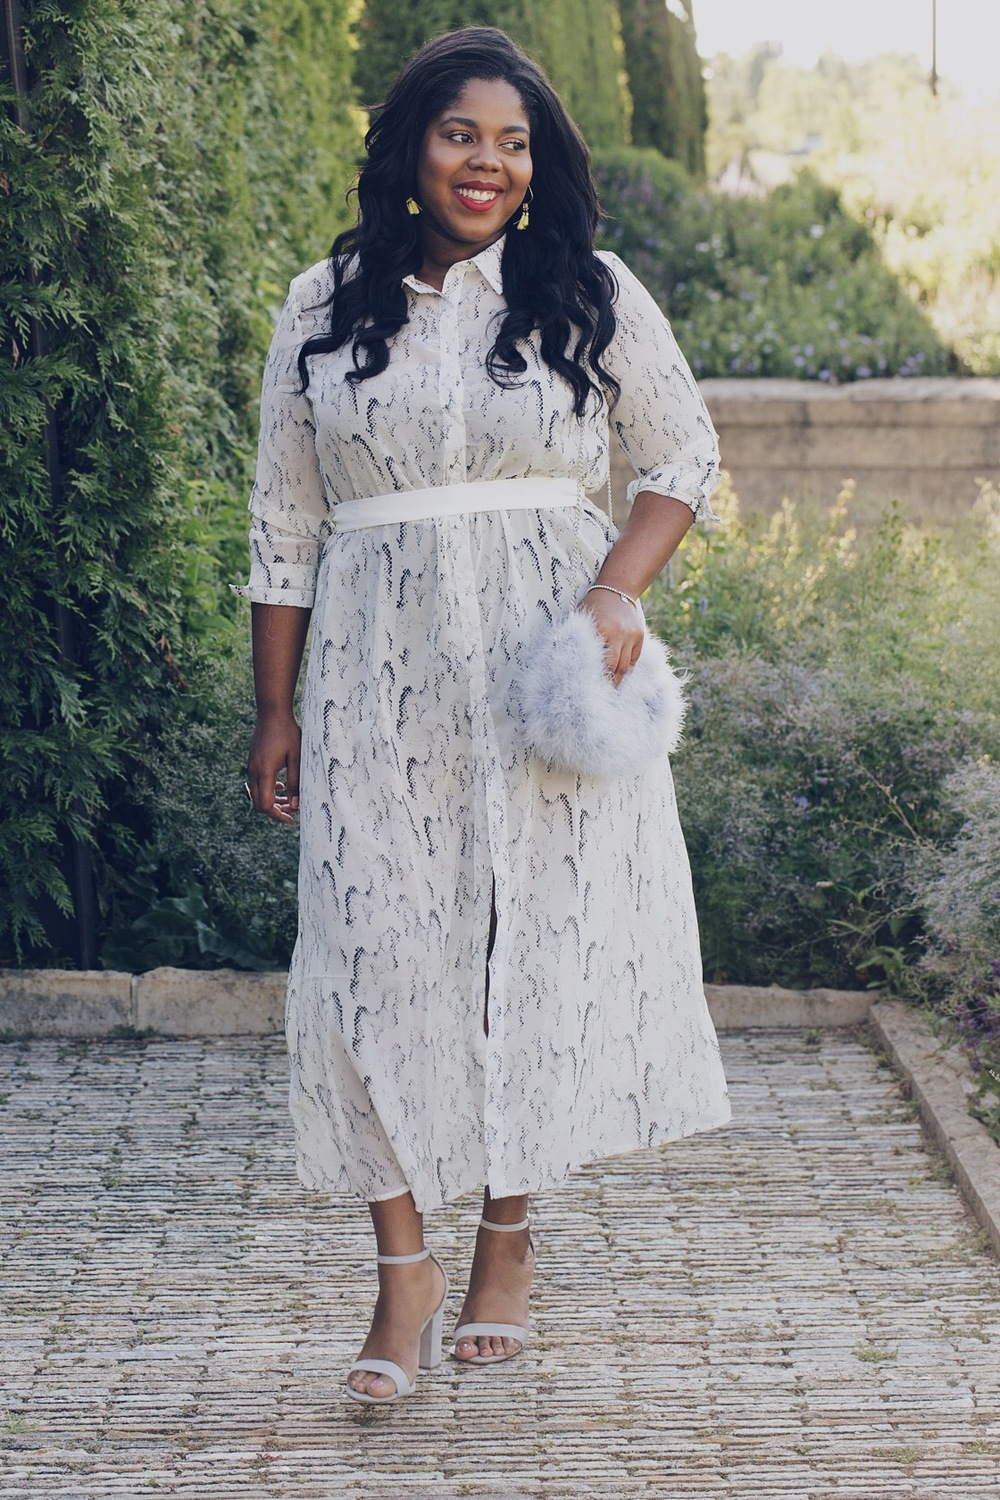 That Hayet Rida SimplyBe Dressobsessed Chicago Plus Size Blogger Influencer  1.jpeg